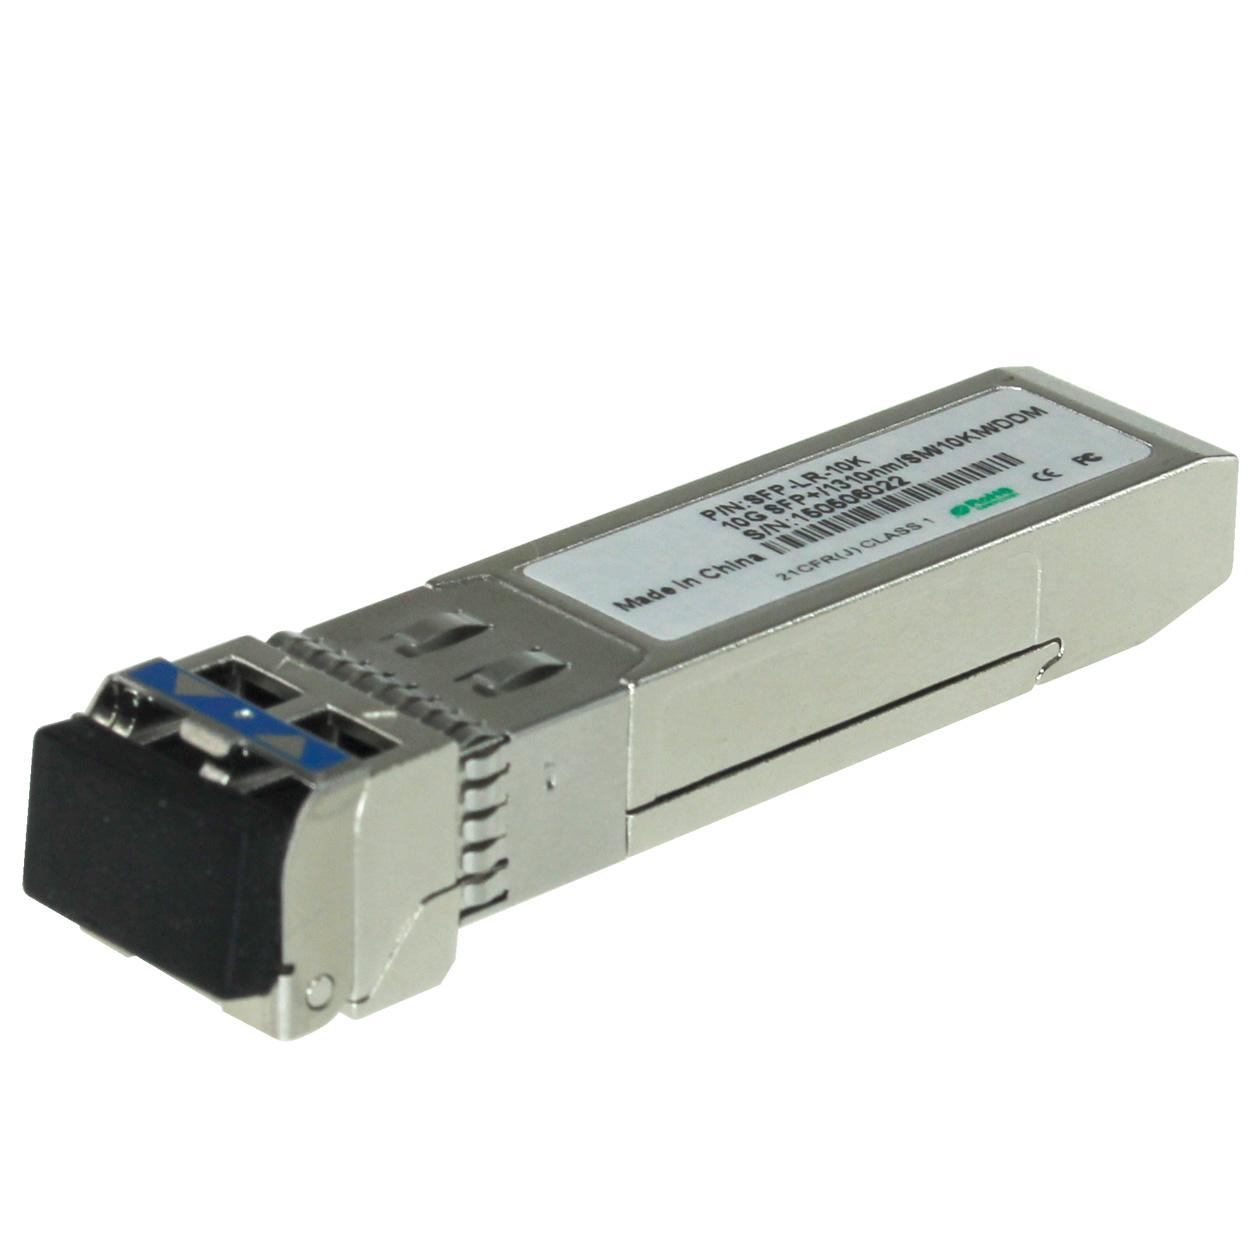 Cisco Compatible 10GBASE-LR SFP+ Transceiver LC Single-mode Duplex Fiber Gigabit 1310nm, with DDM, Up to 10 Km